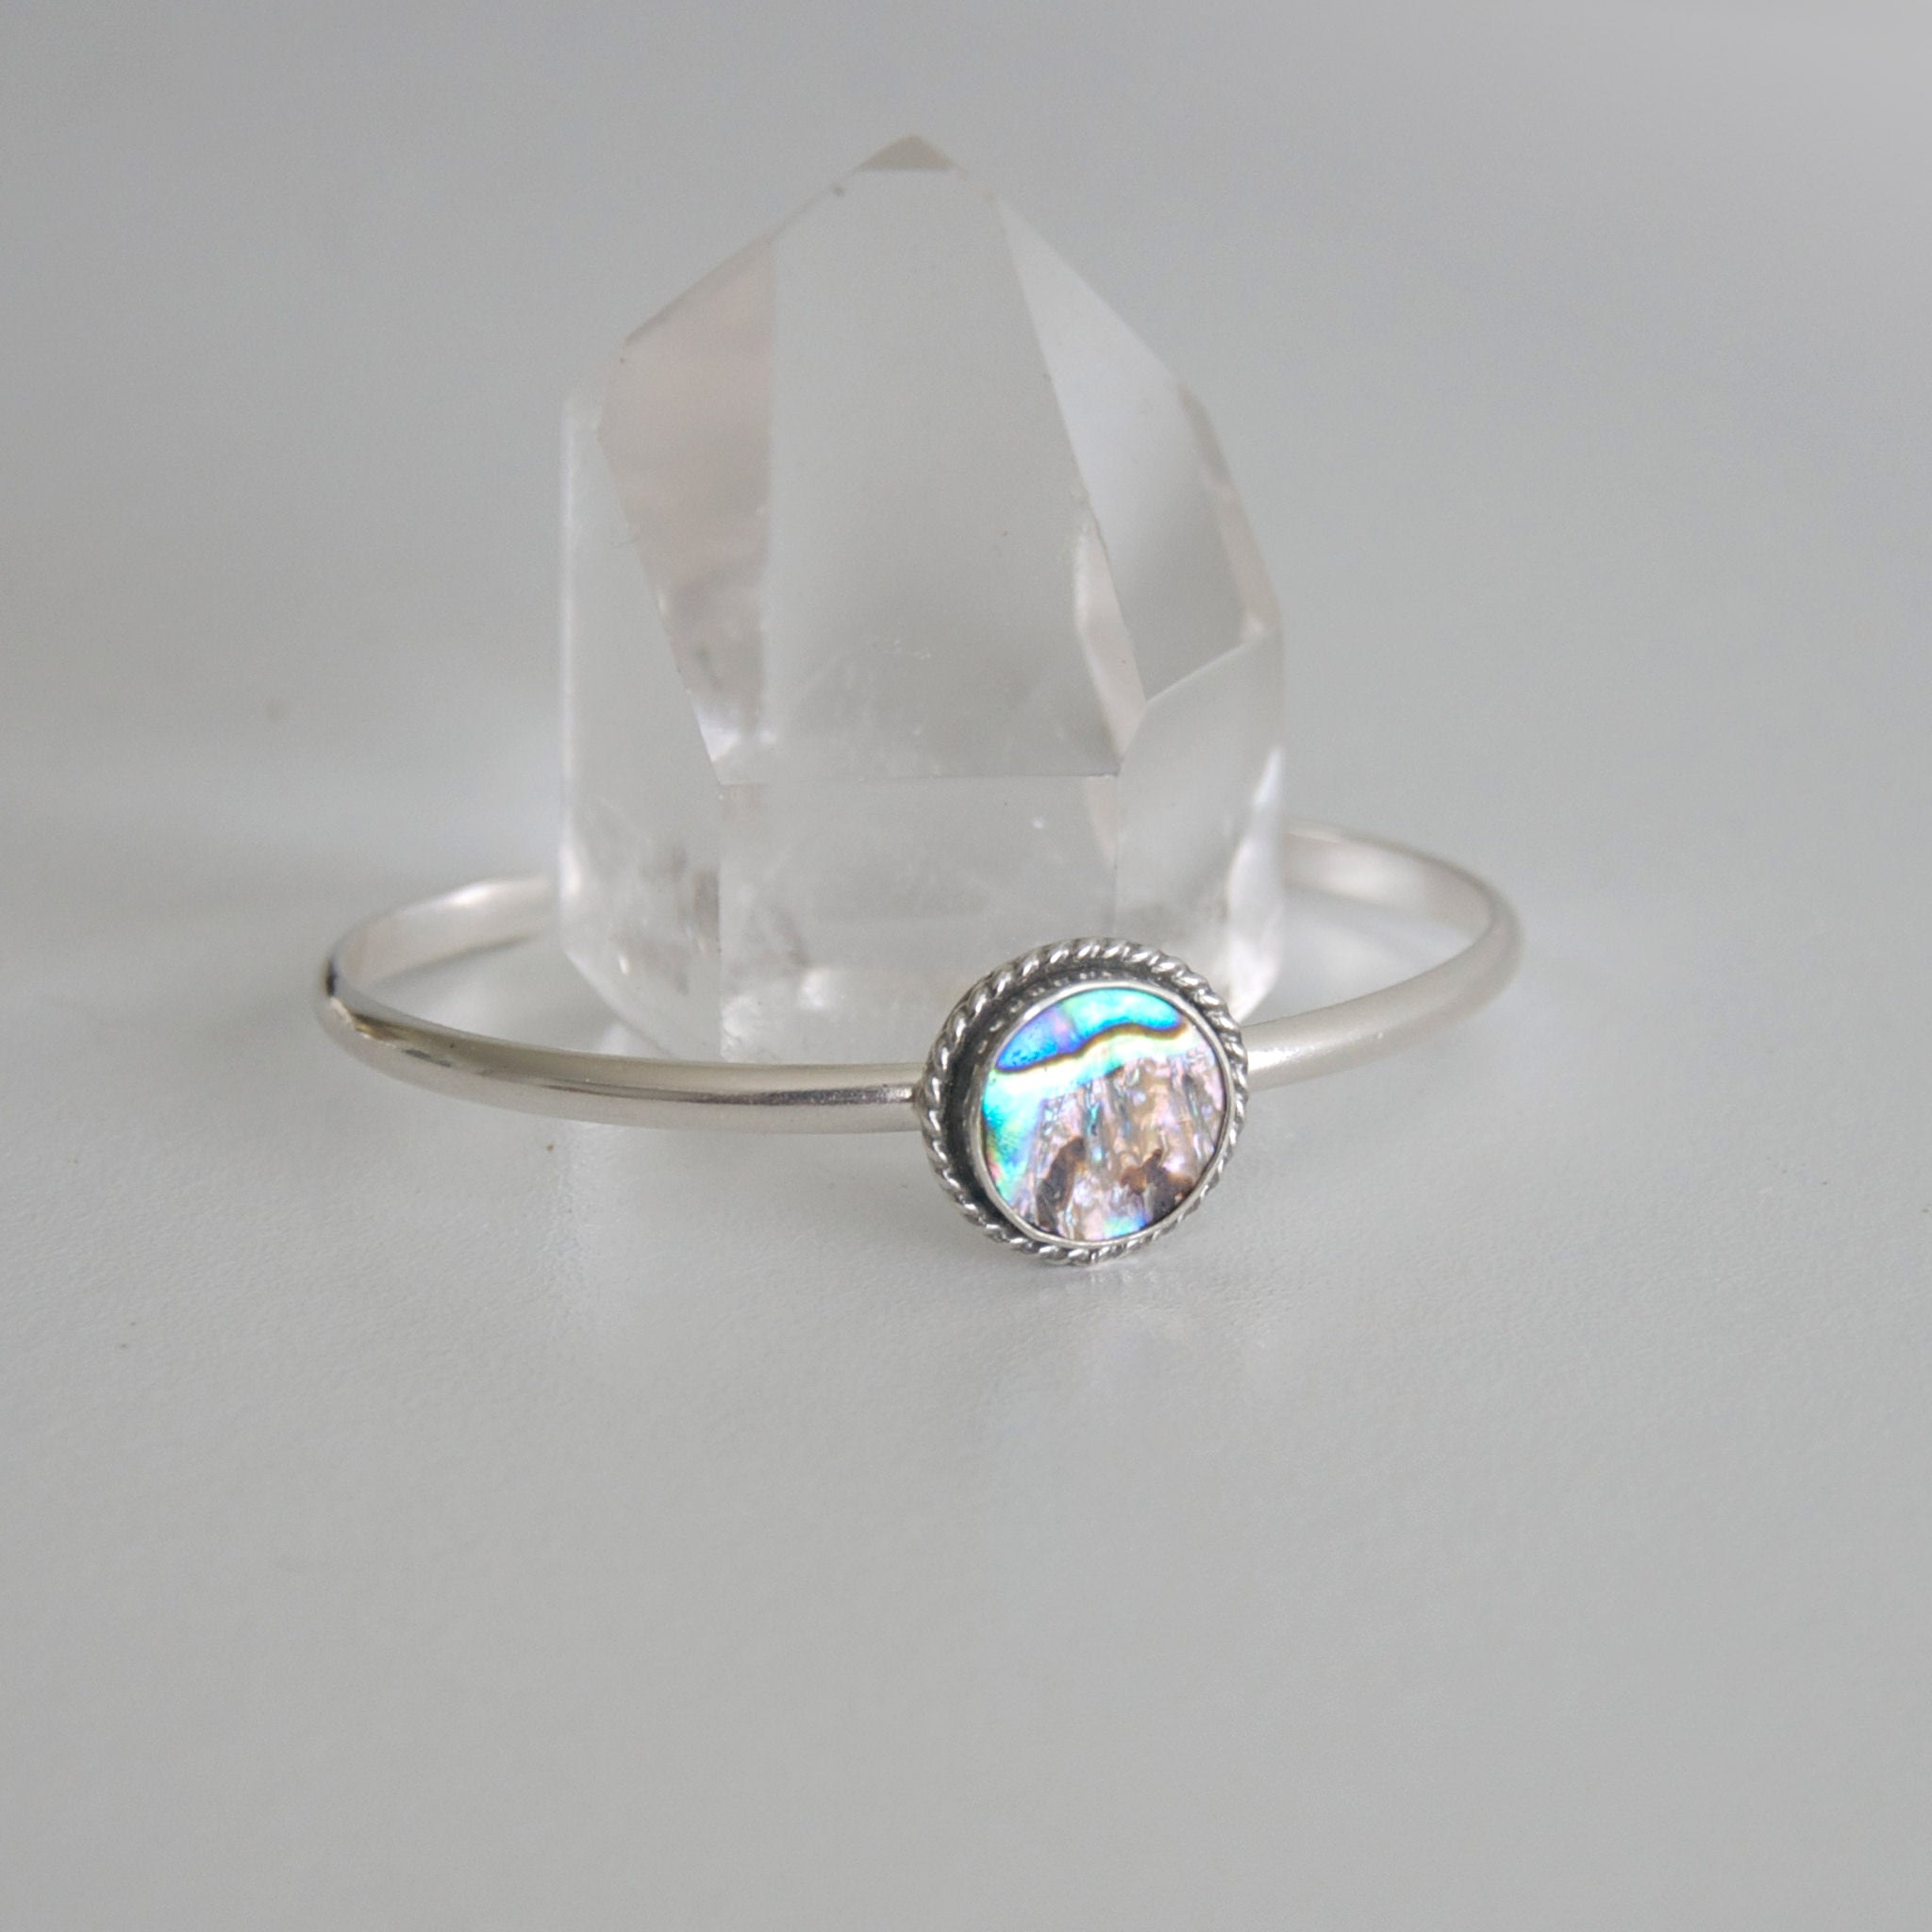 Simple-Embelished-Abalone-Sterling-Silver-Cuff